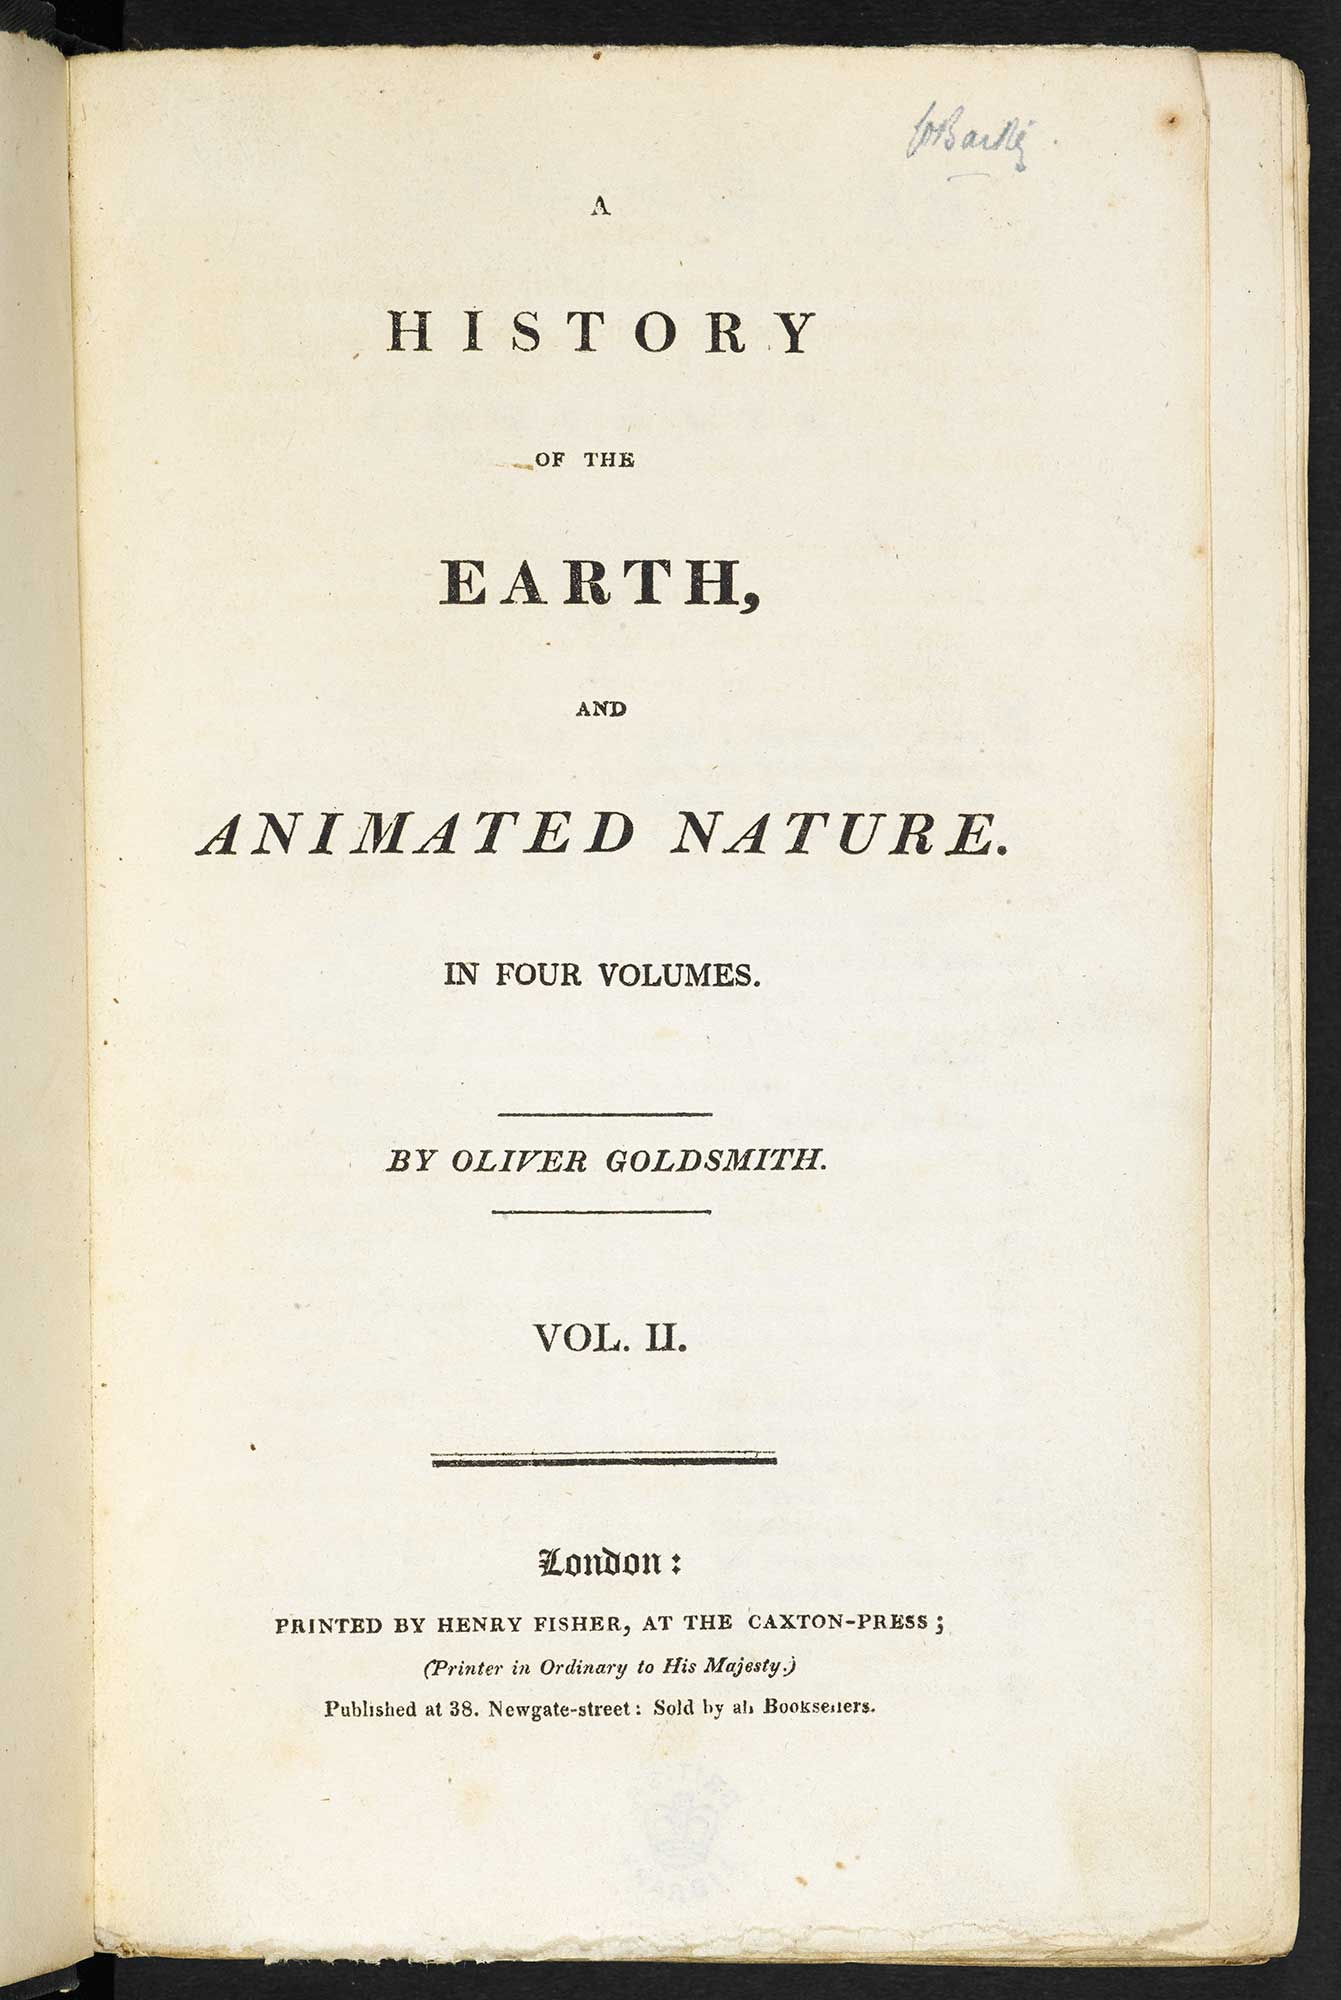 A History of the Earth, and Animated Nature [page: vol. II title page]